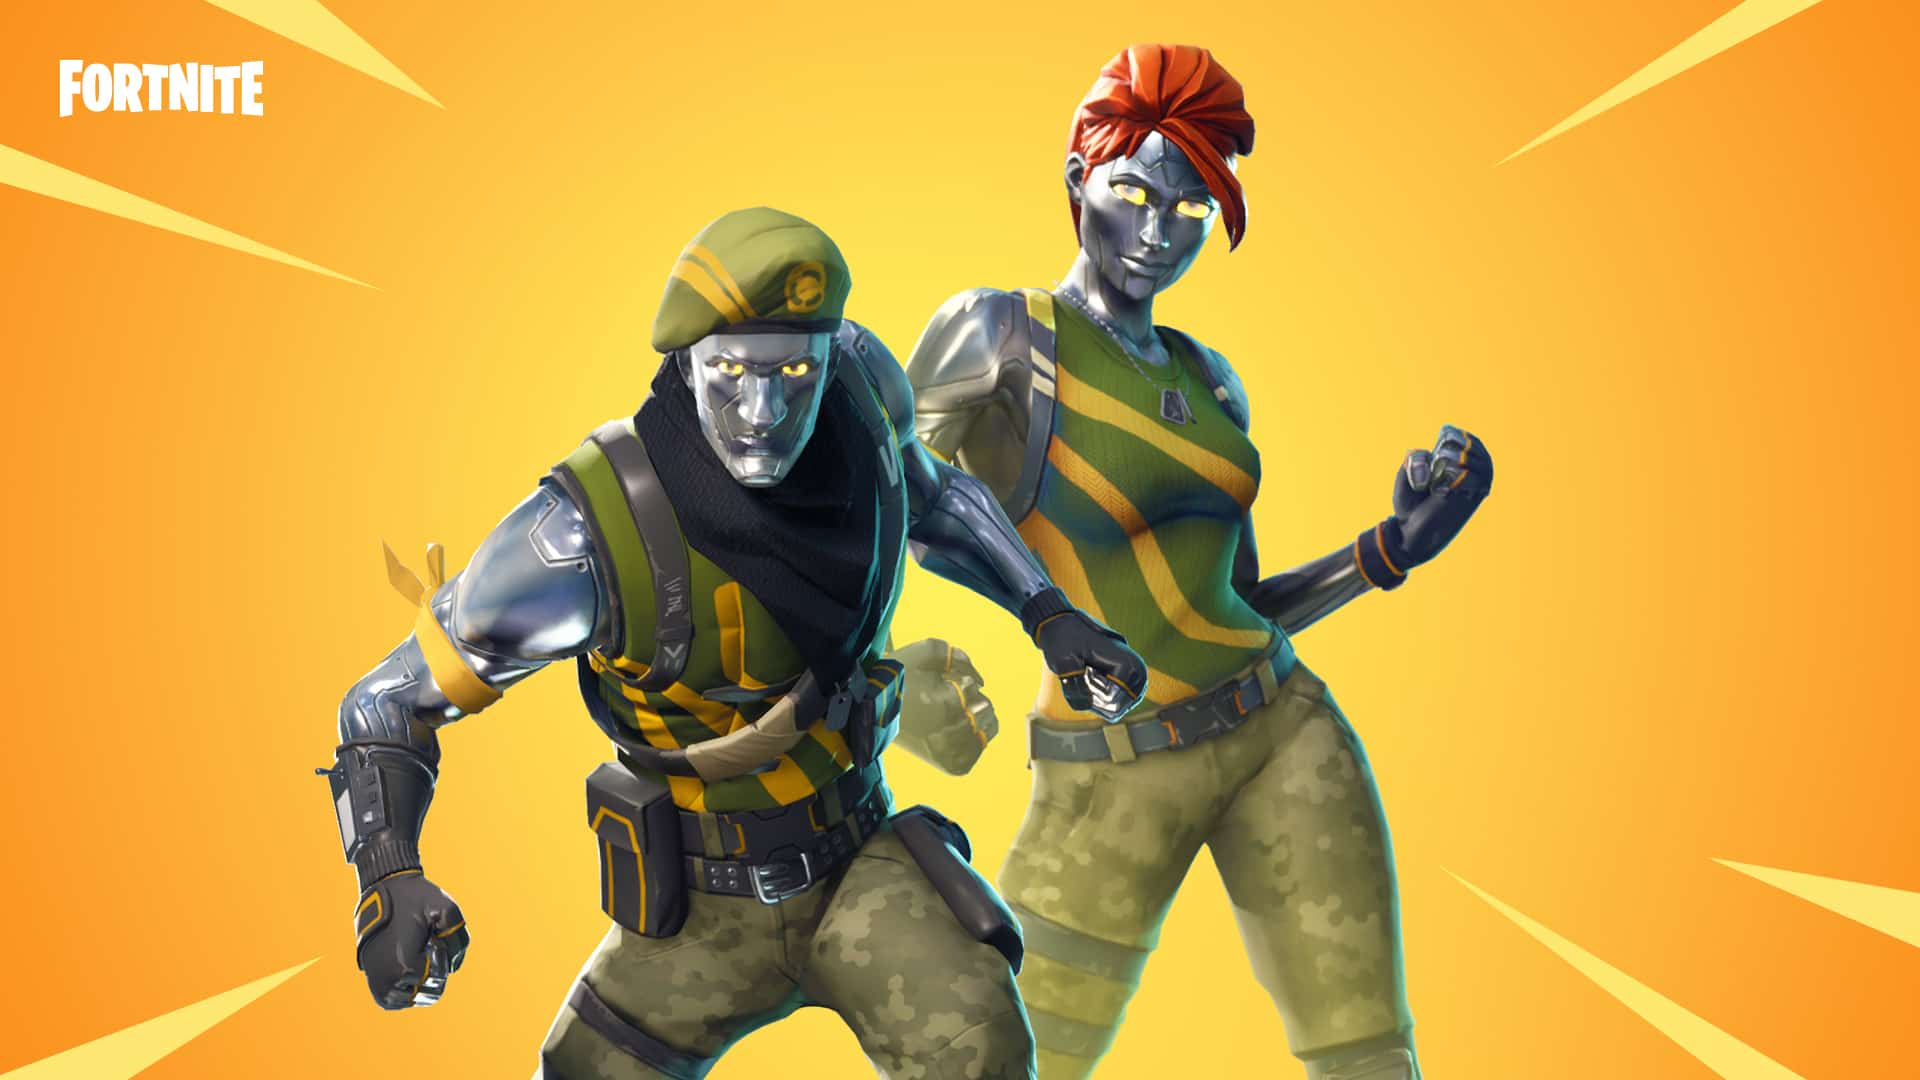 Fortnite Week 6 Challenges Are Now Live, Here's What They Are